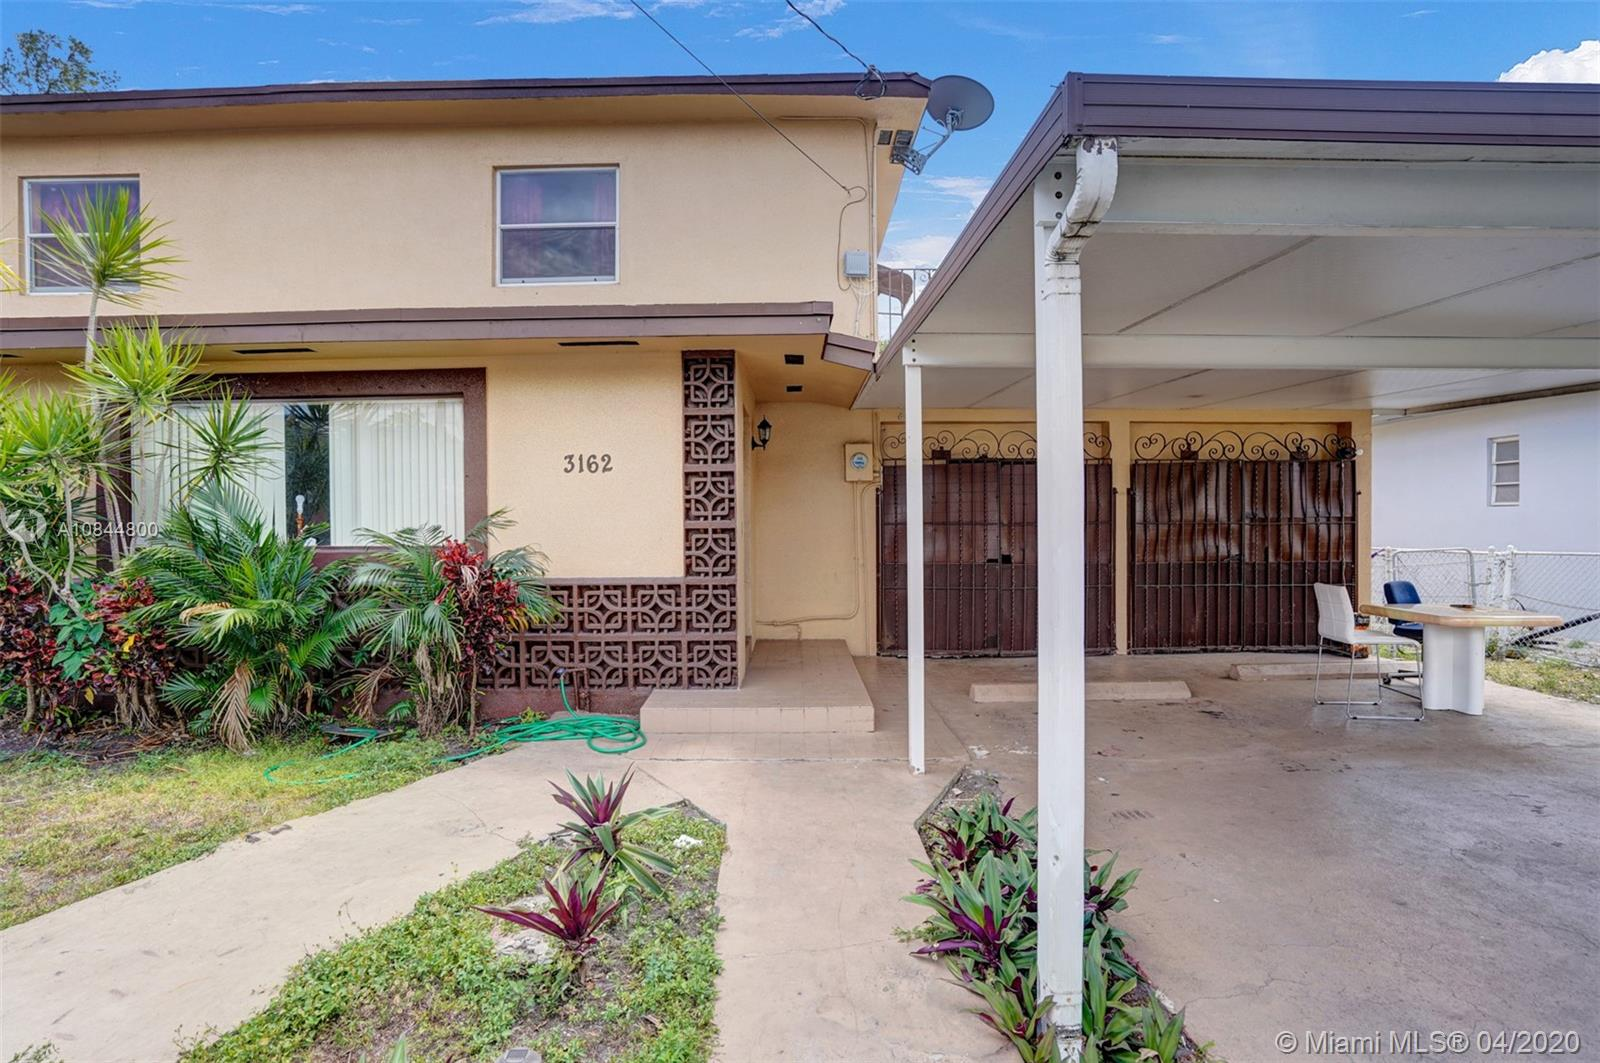 Details for 3162 47th St, Miami, FL 33142